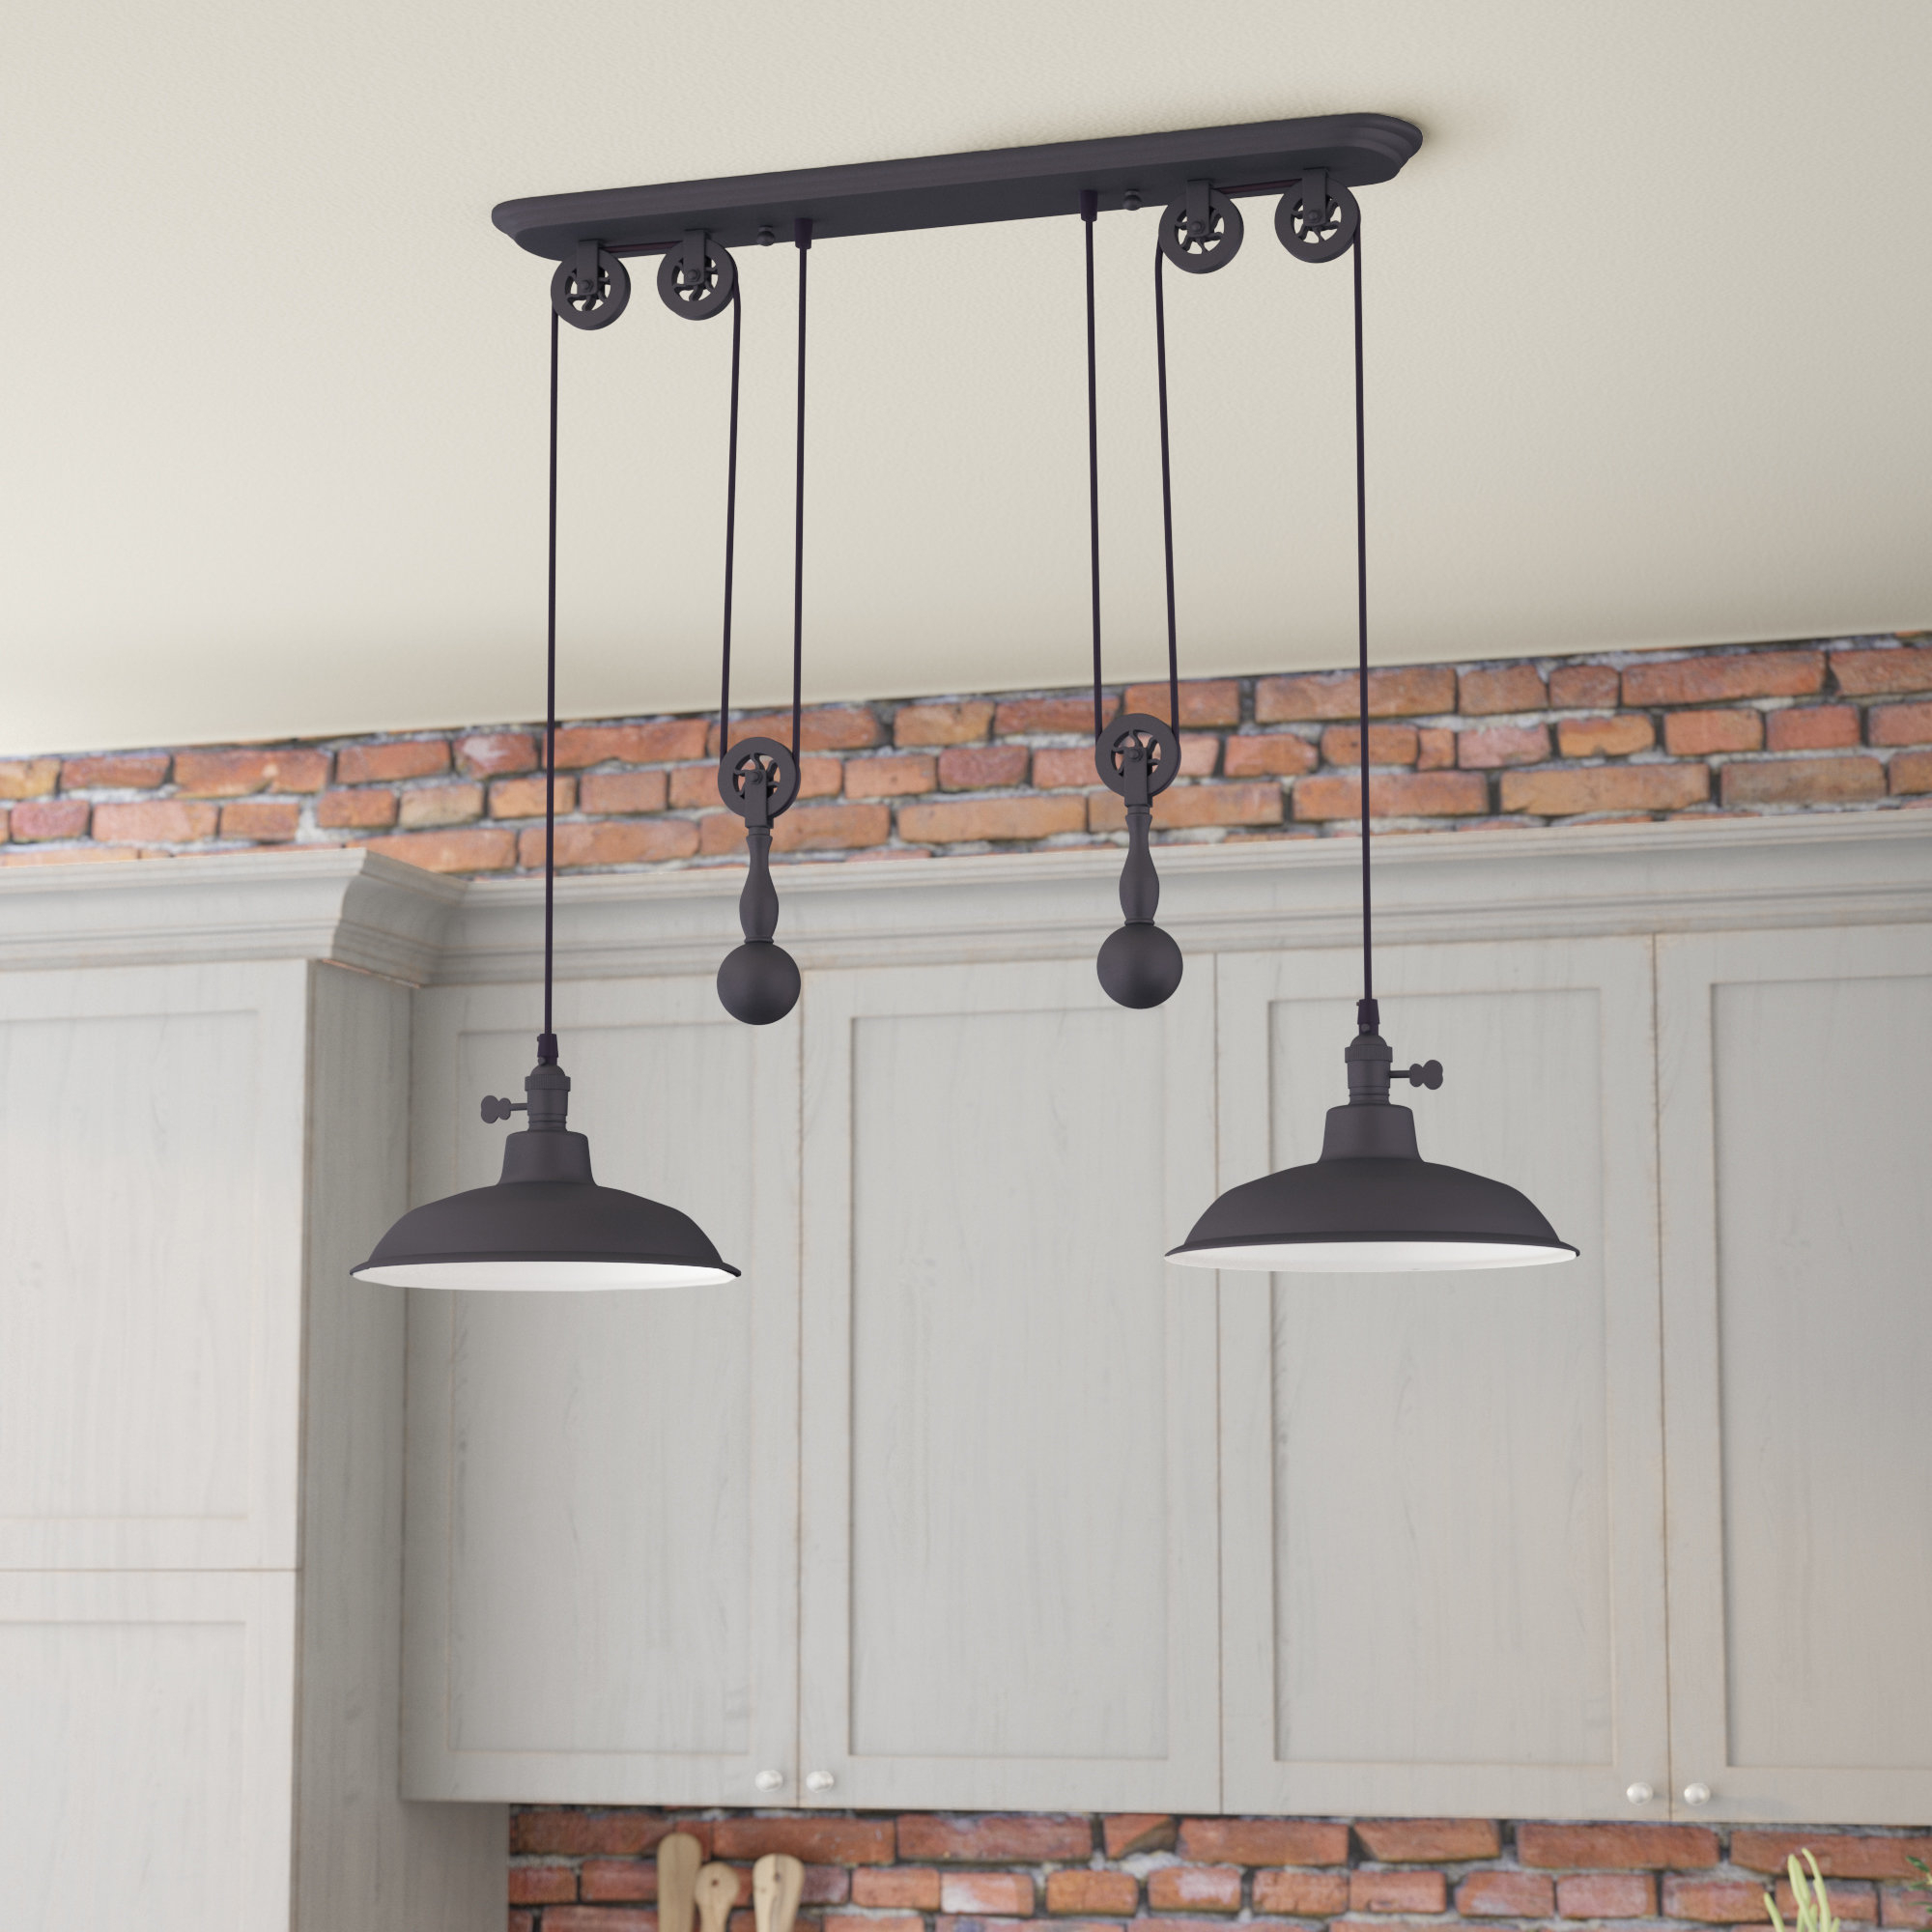 Ariel 2 Light Kitchen Island Dome Pendant With Euclid 2 Light Kitchen Island Linear Pendants (View 4 of 30)